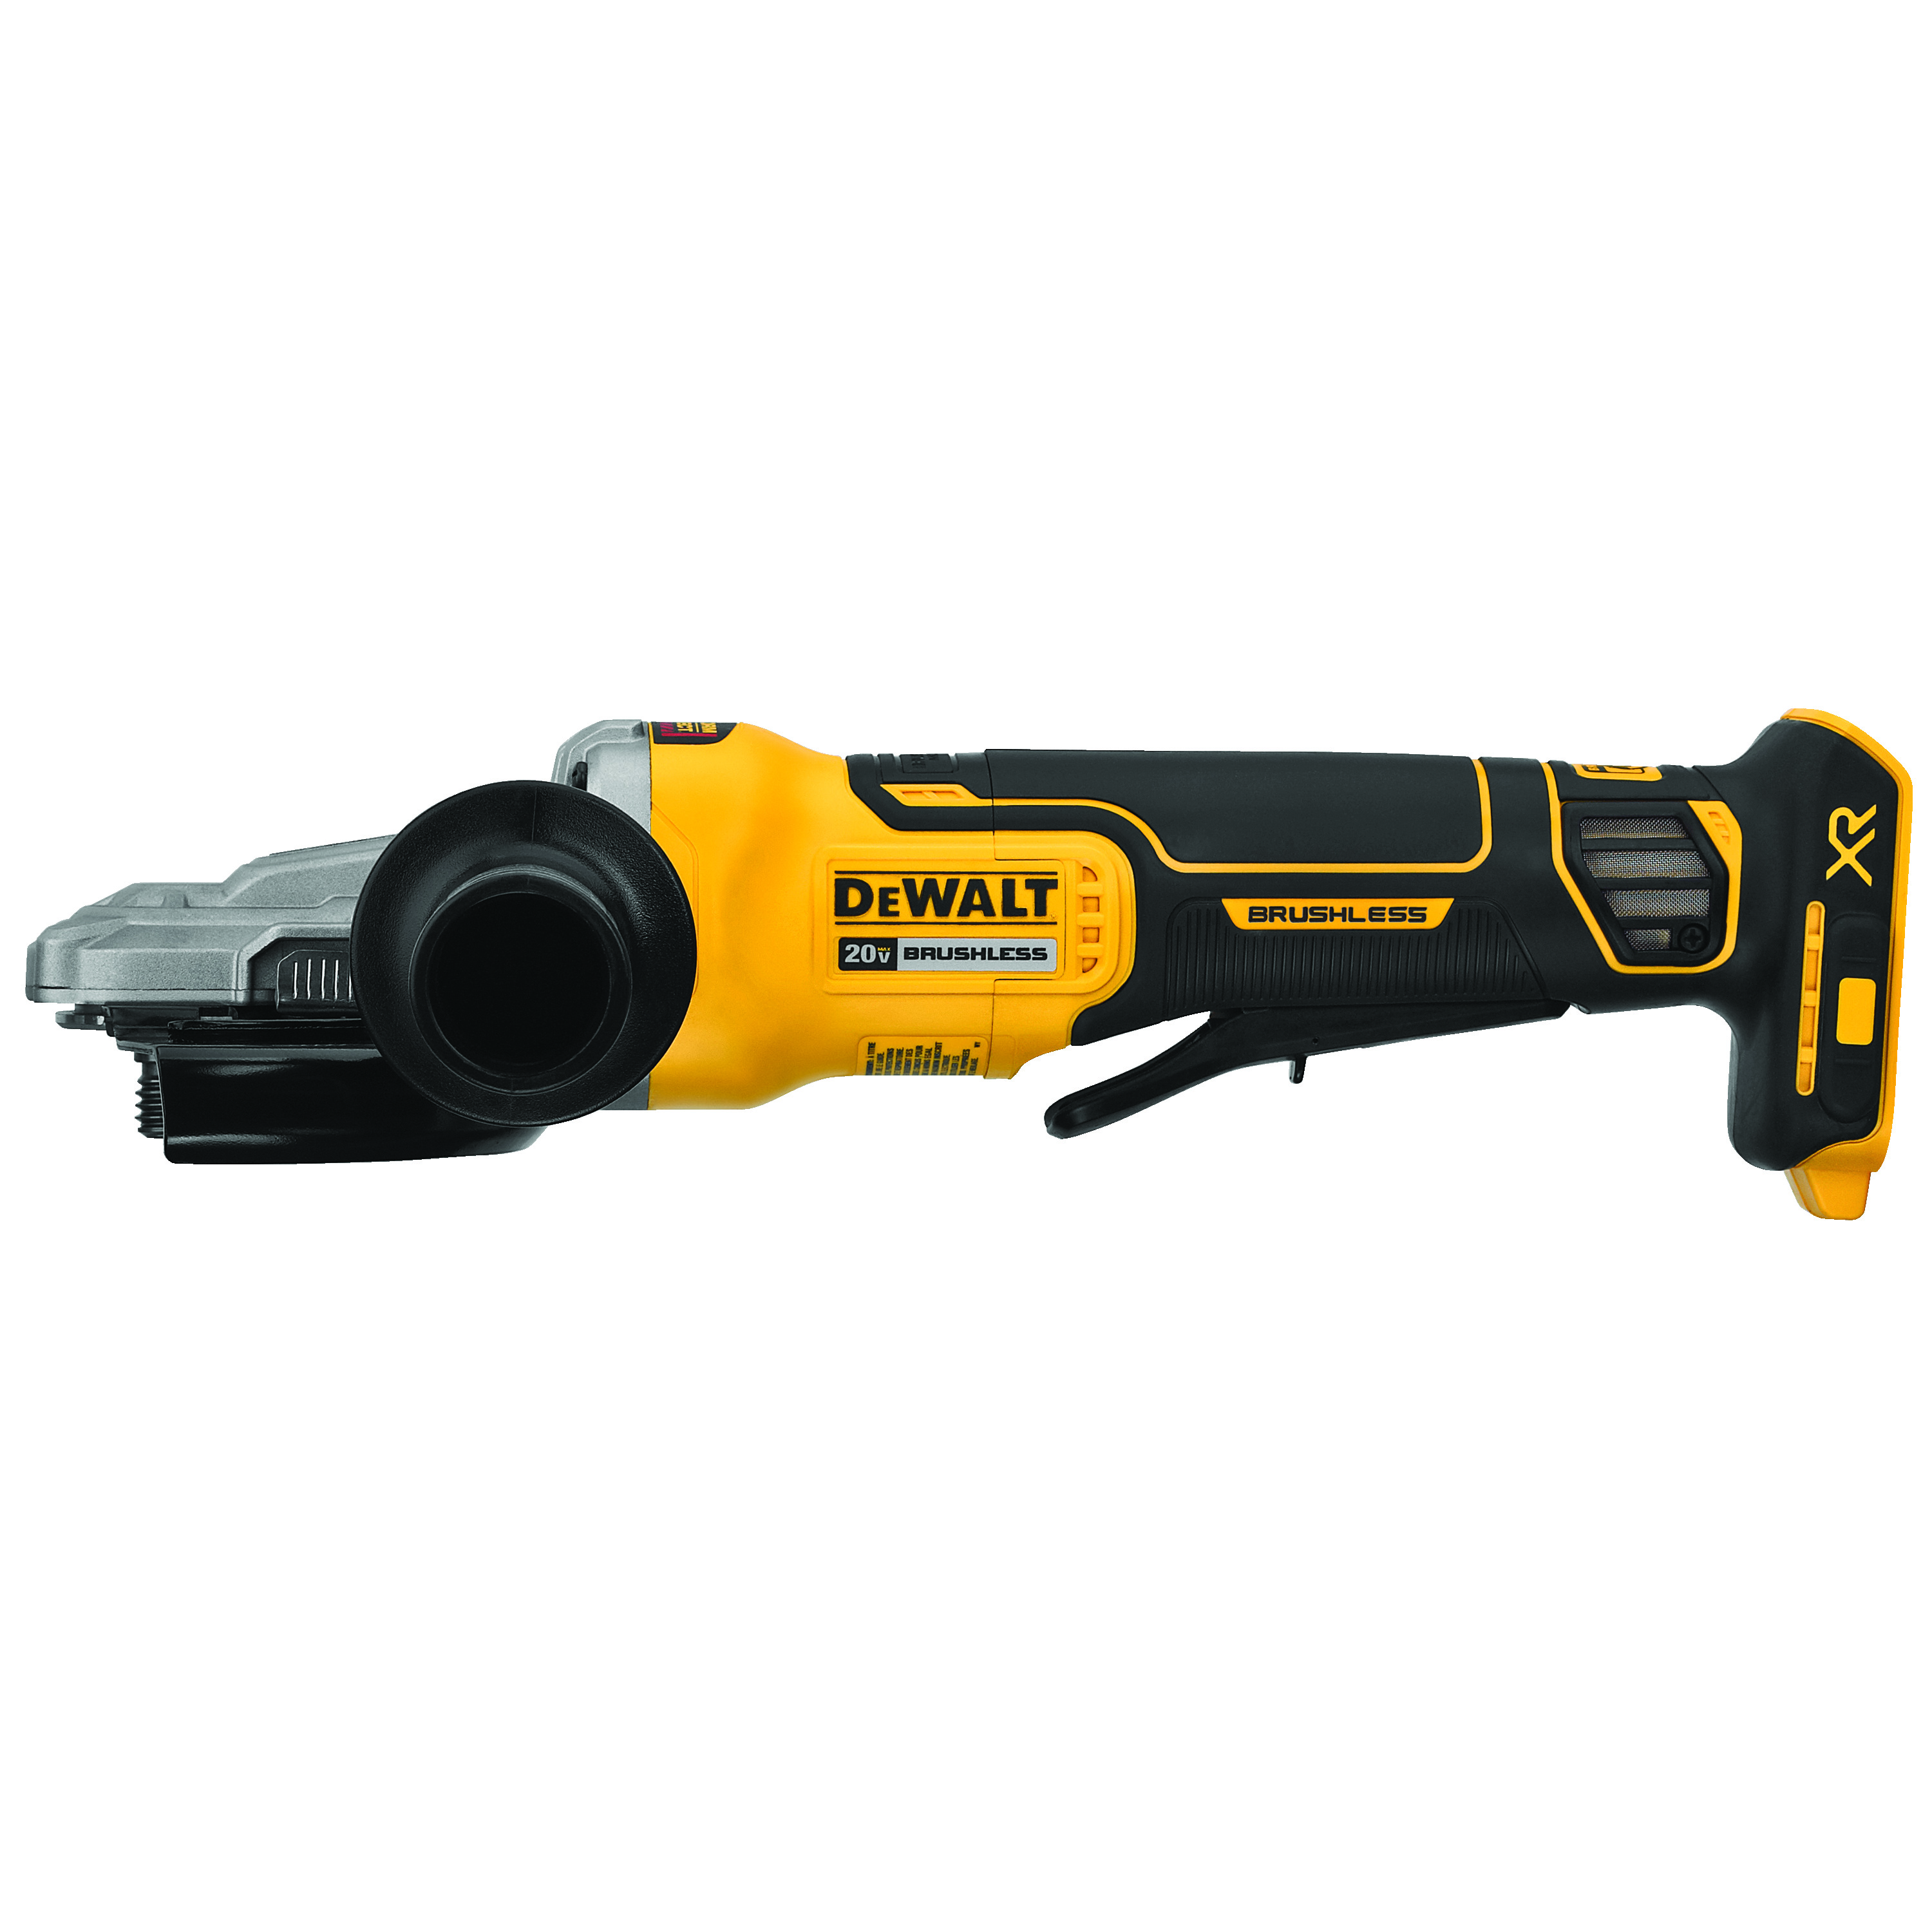 DeWALT® DCG413FB Small Cordless Angle Grinder With Kickback Brake, 5 in Dia Wheel, 20 VDC, Lithium-Ion Battery, Flathead Paddle Switch